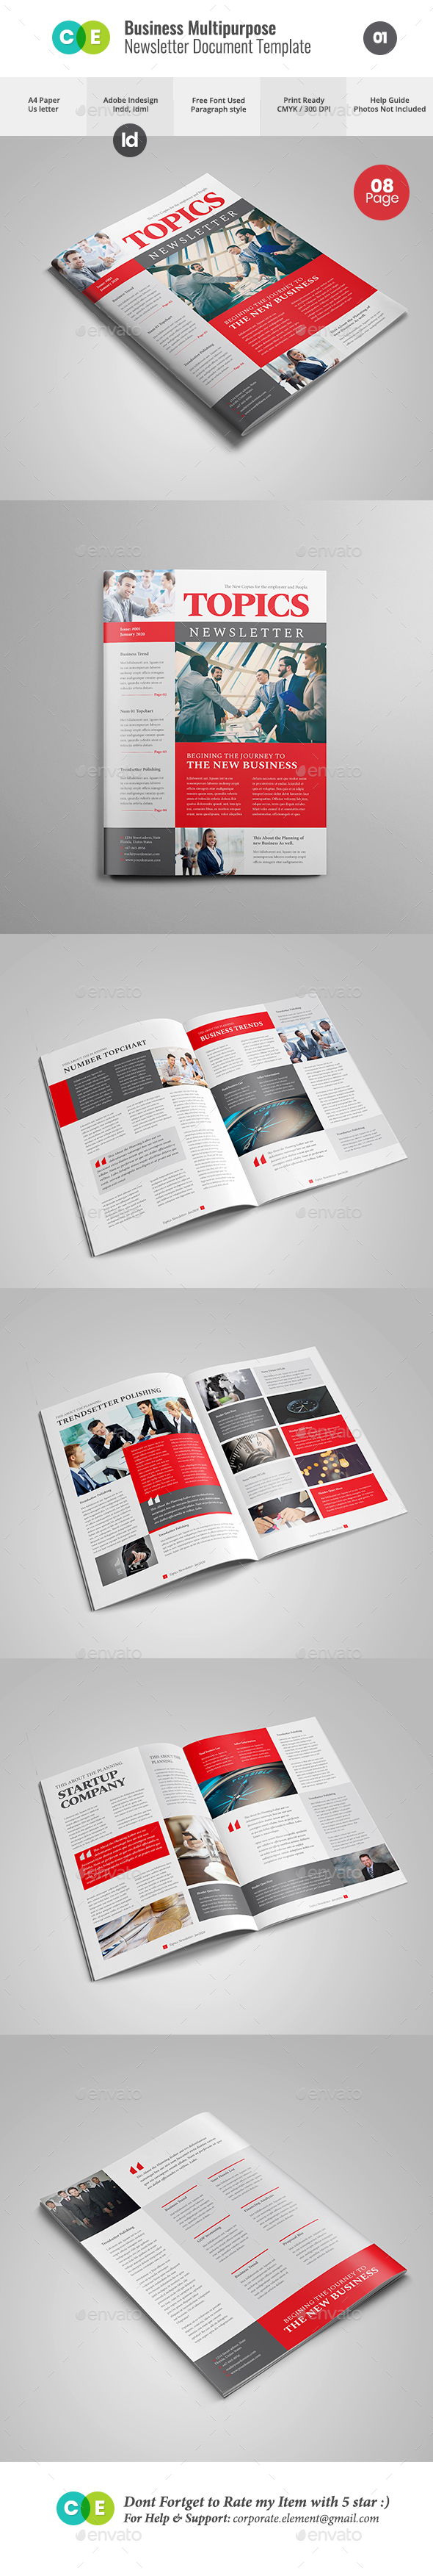 GraphicRiver NEWSLETTER For Multipurpose Business V01 21116747